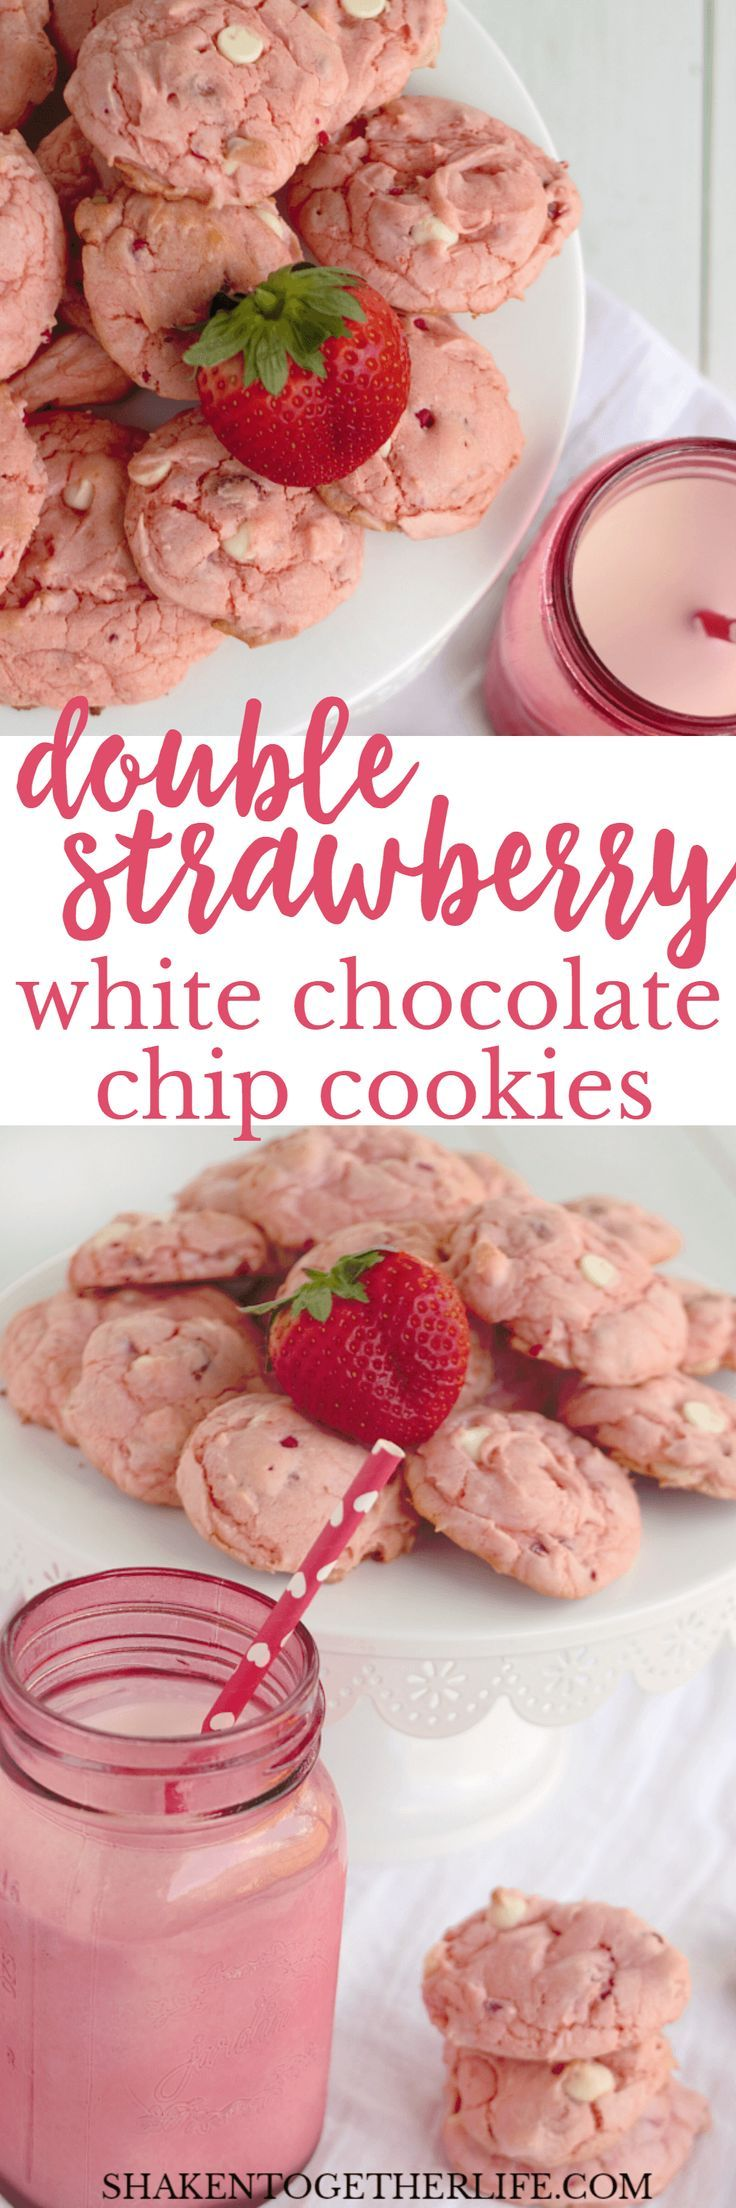 Chocolate chip cookie recipe with white cake mix